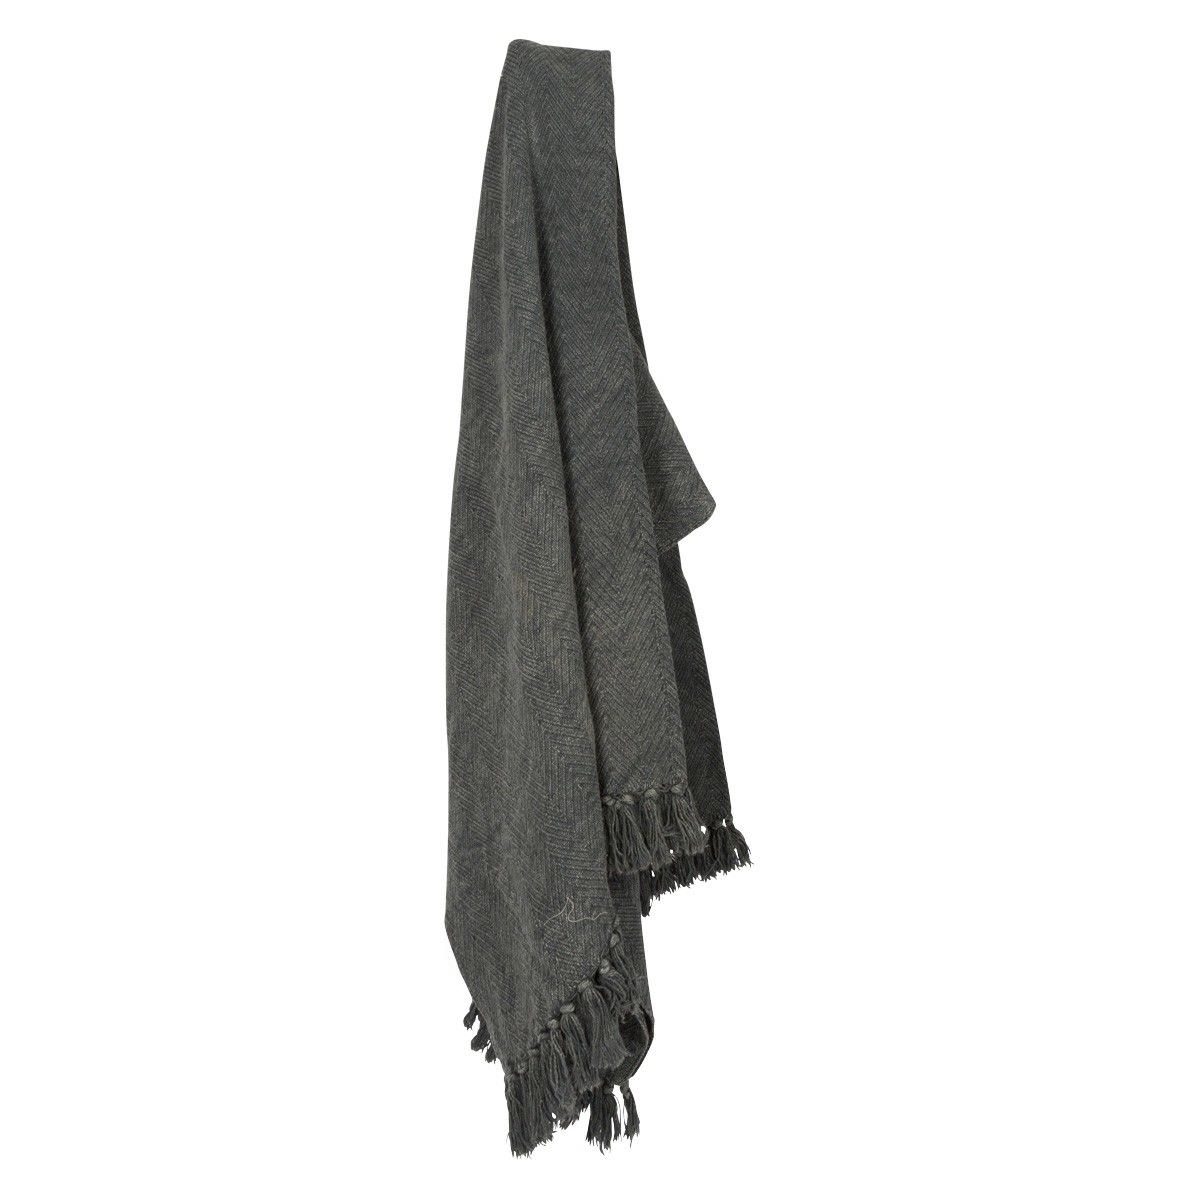 Kitson Stone Washed Cotton Throw with Tassels, Grey